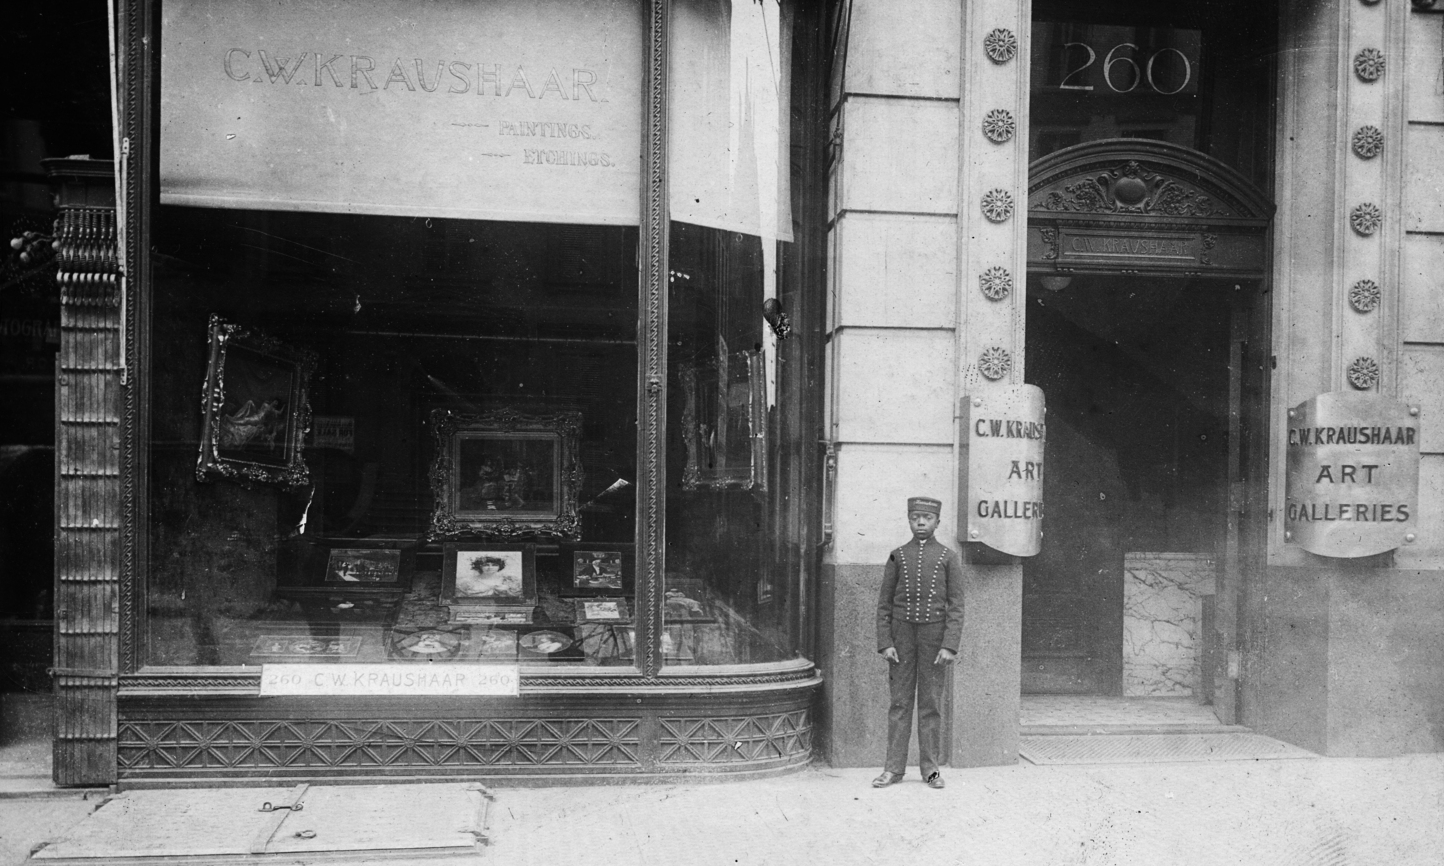 Photograph of boy standing in front of 260 Fifth Avenue, Kraushaar Art Galleries